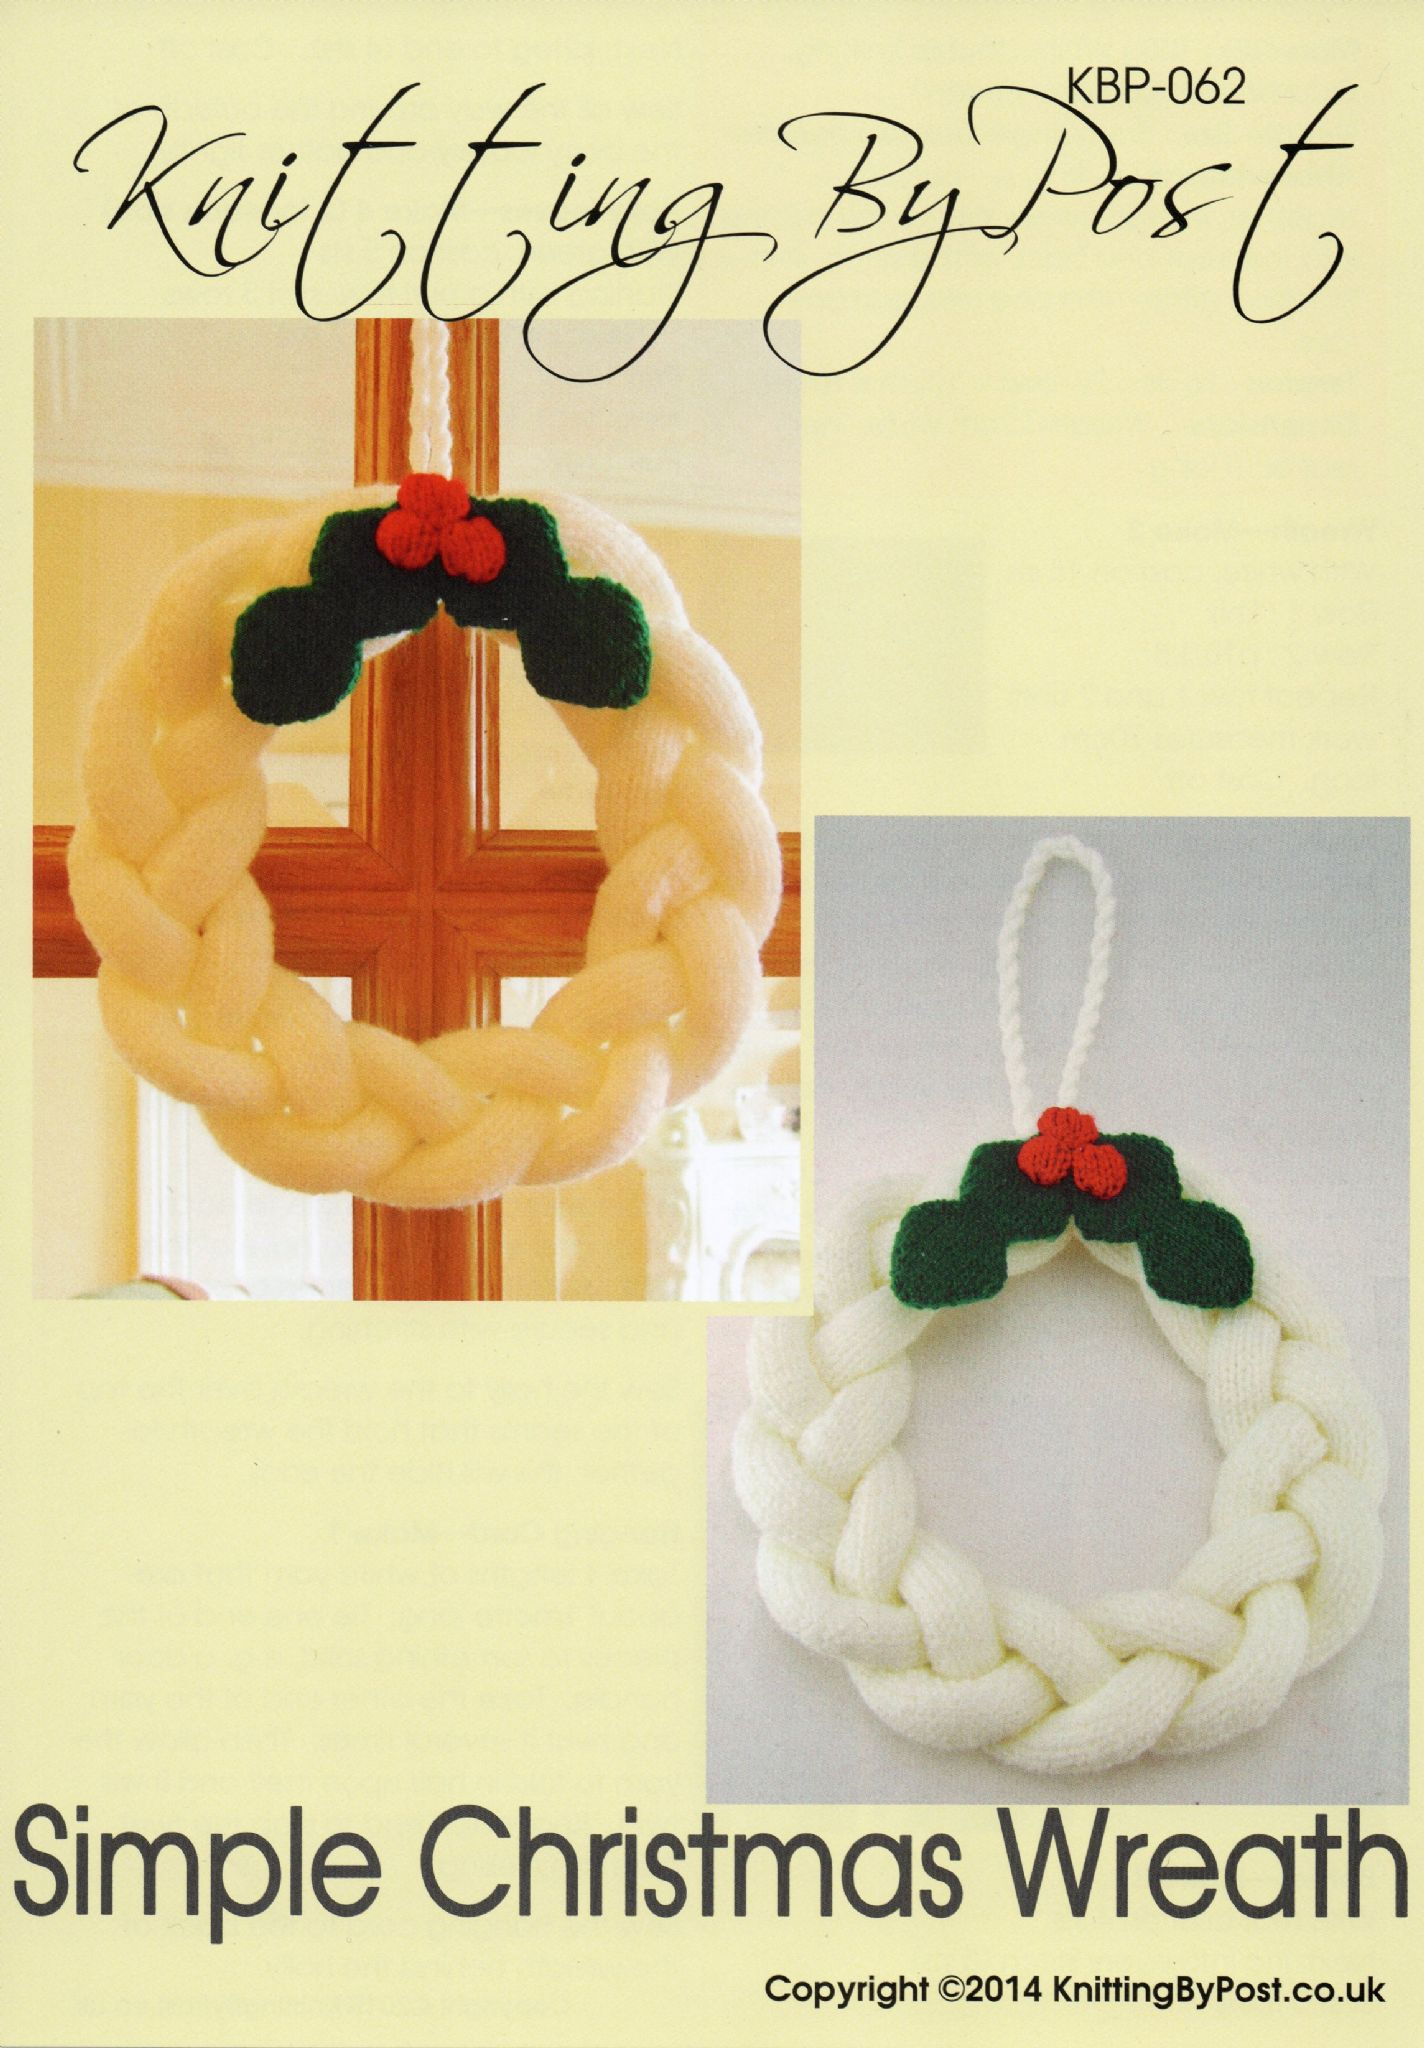 KBP-062 - KNITTING BY POST DK SIMPLE CHRISTMAS WREATH KNITTING PATTERN